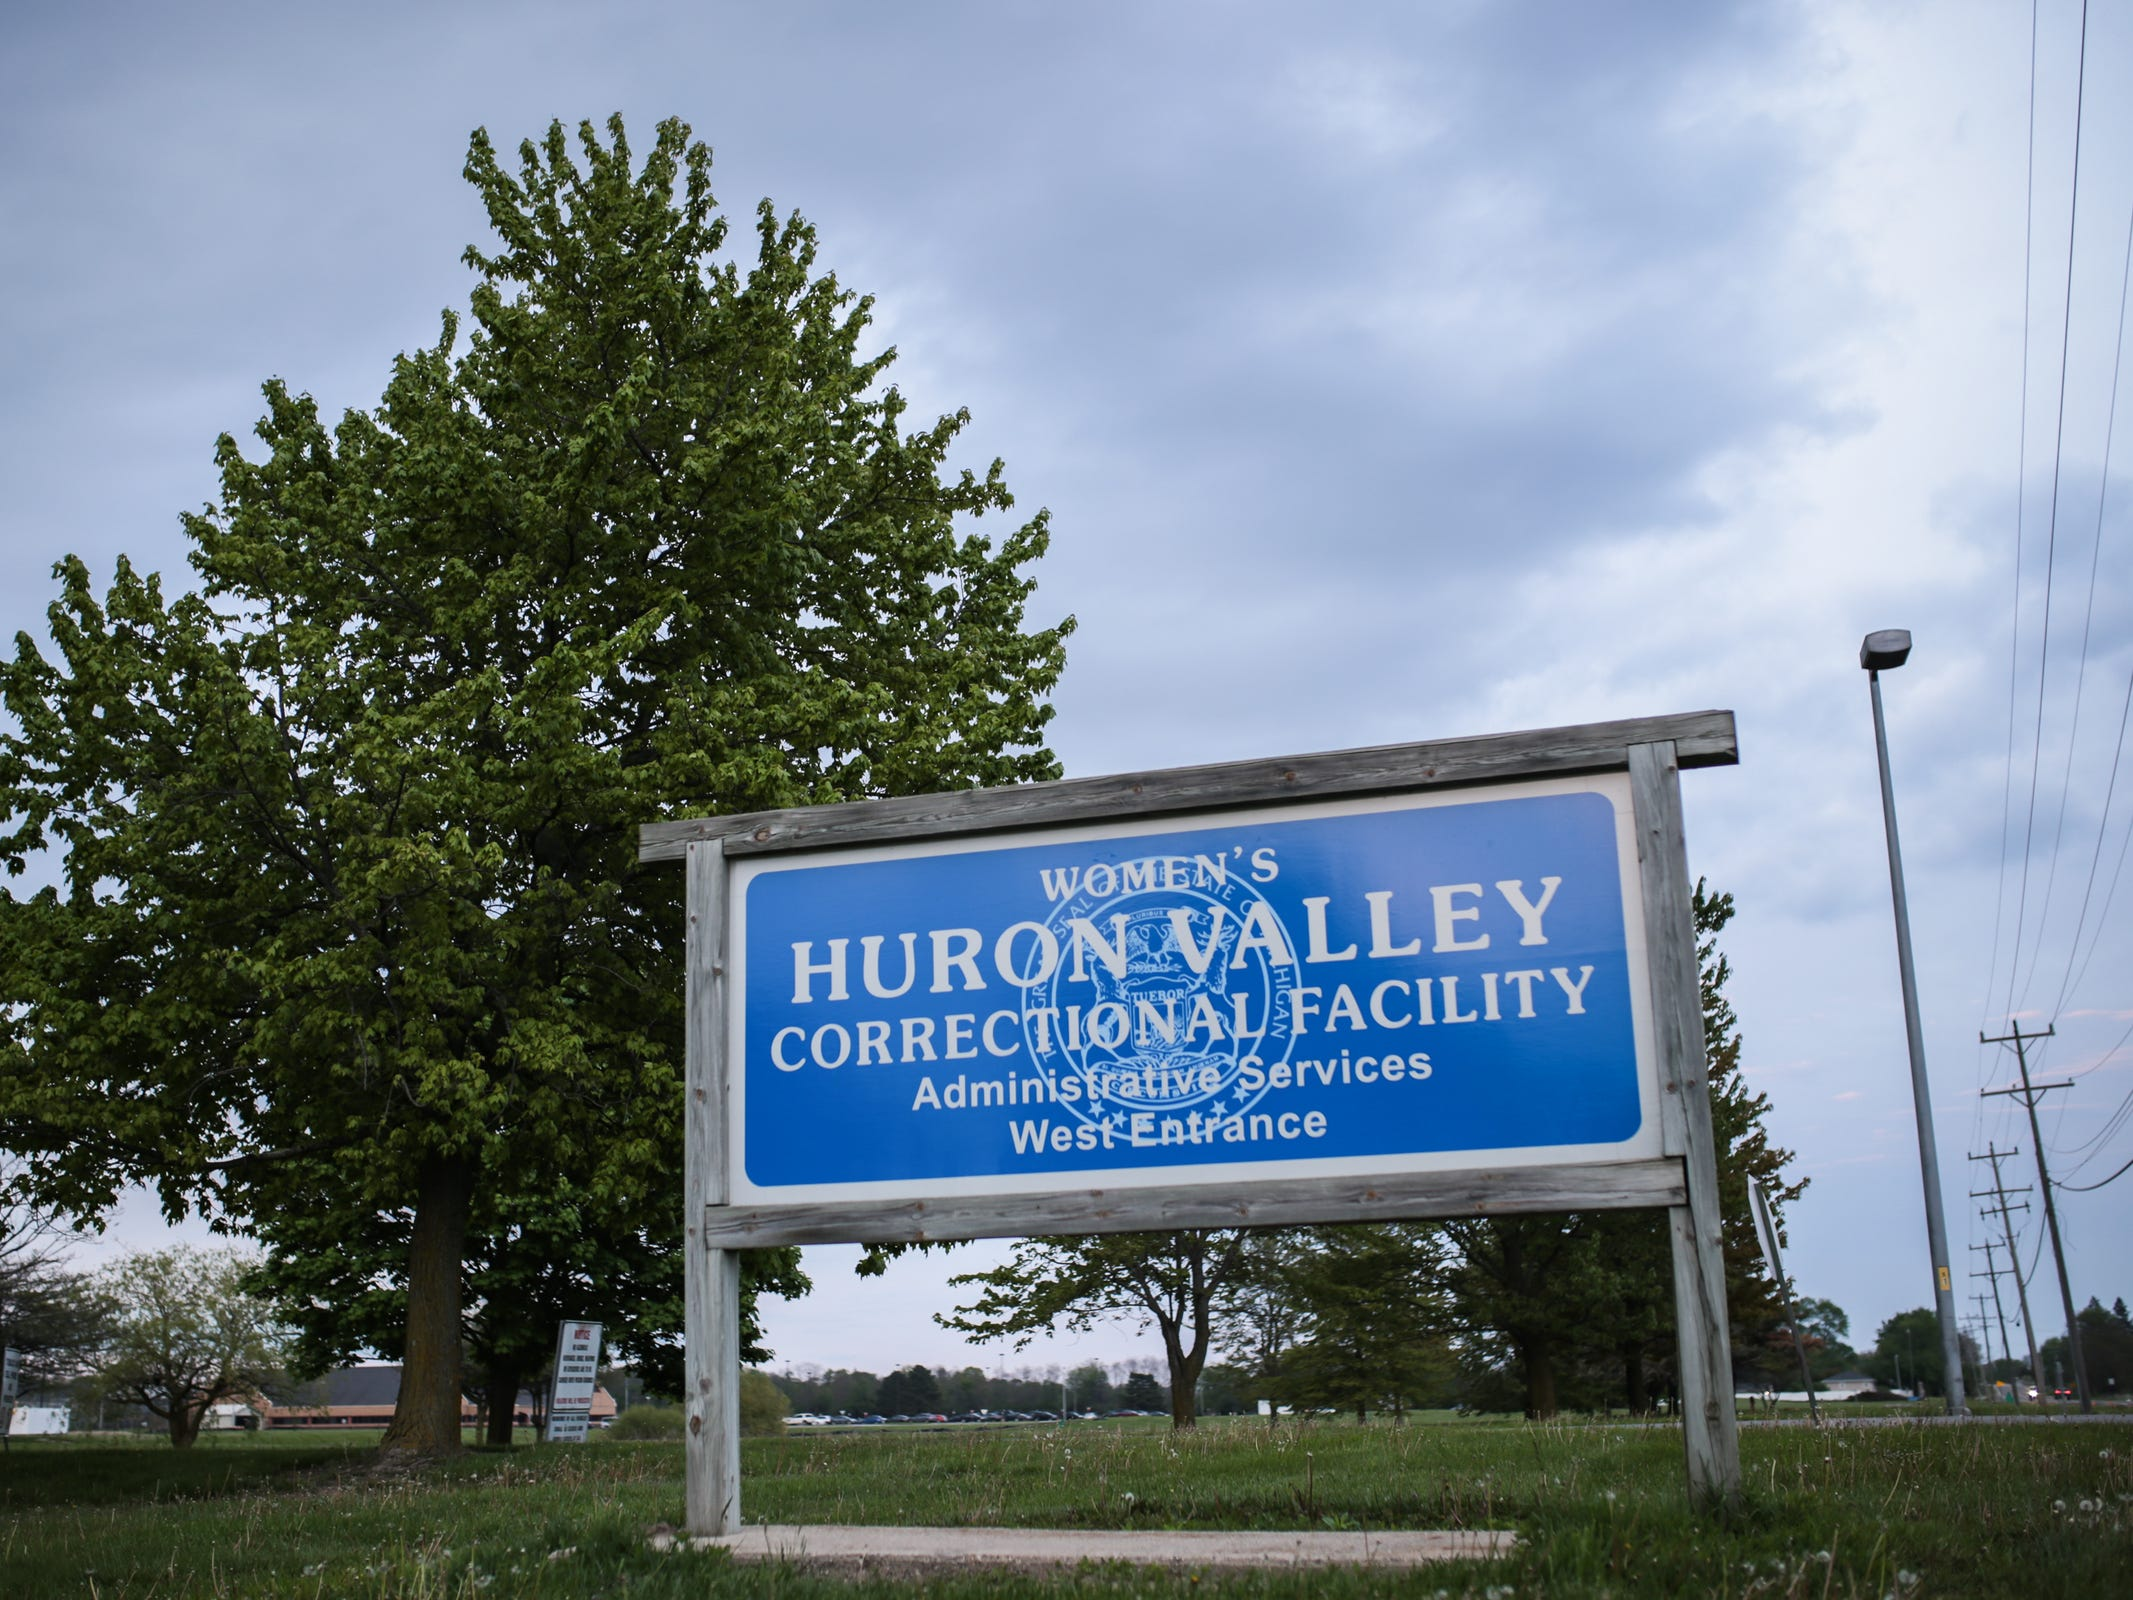 At least 24 cases of scabies found at Michigan's only women's prison